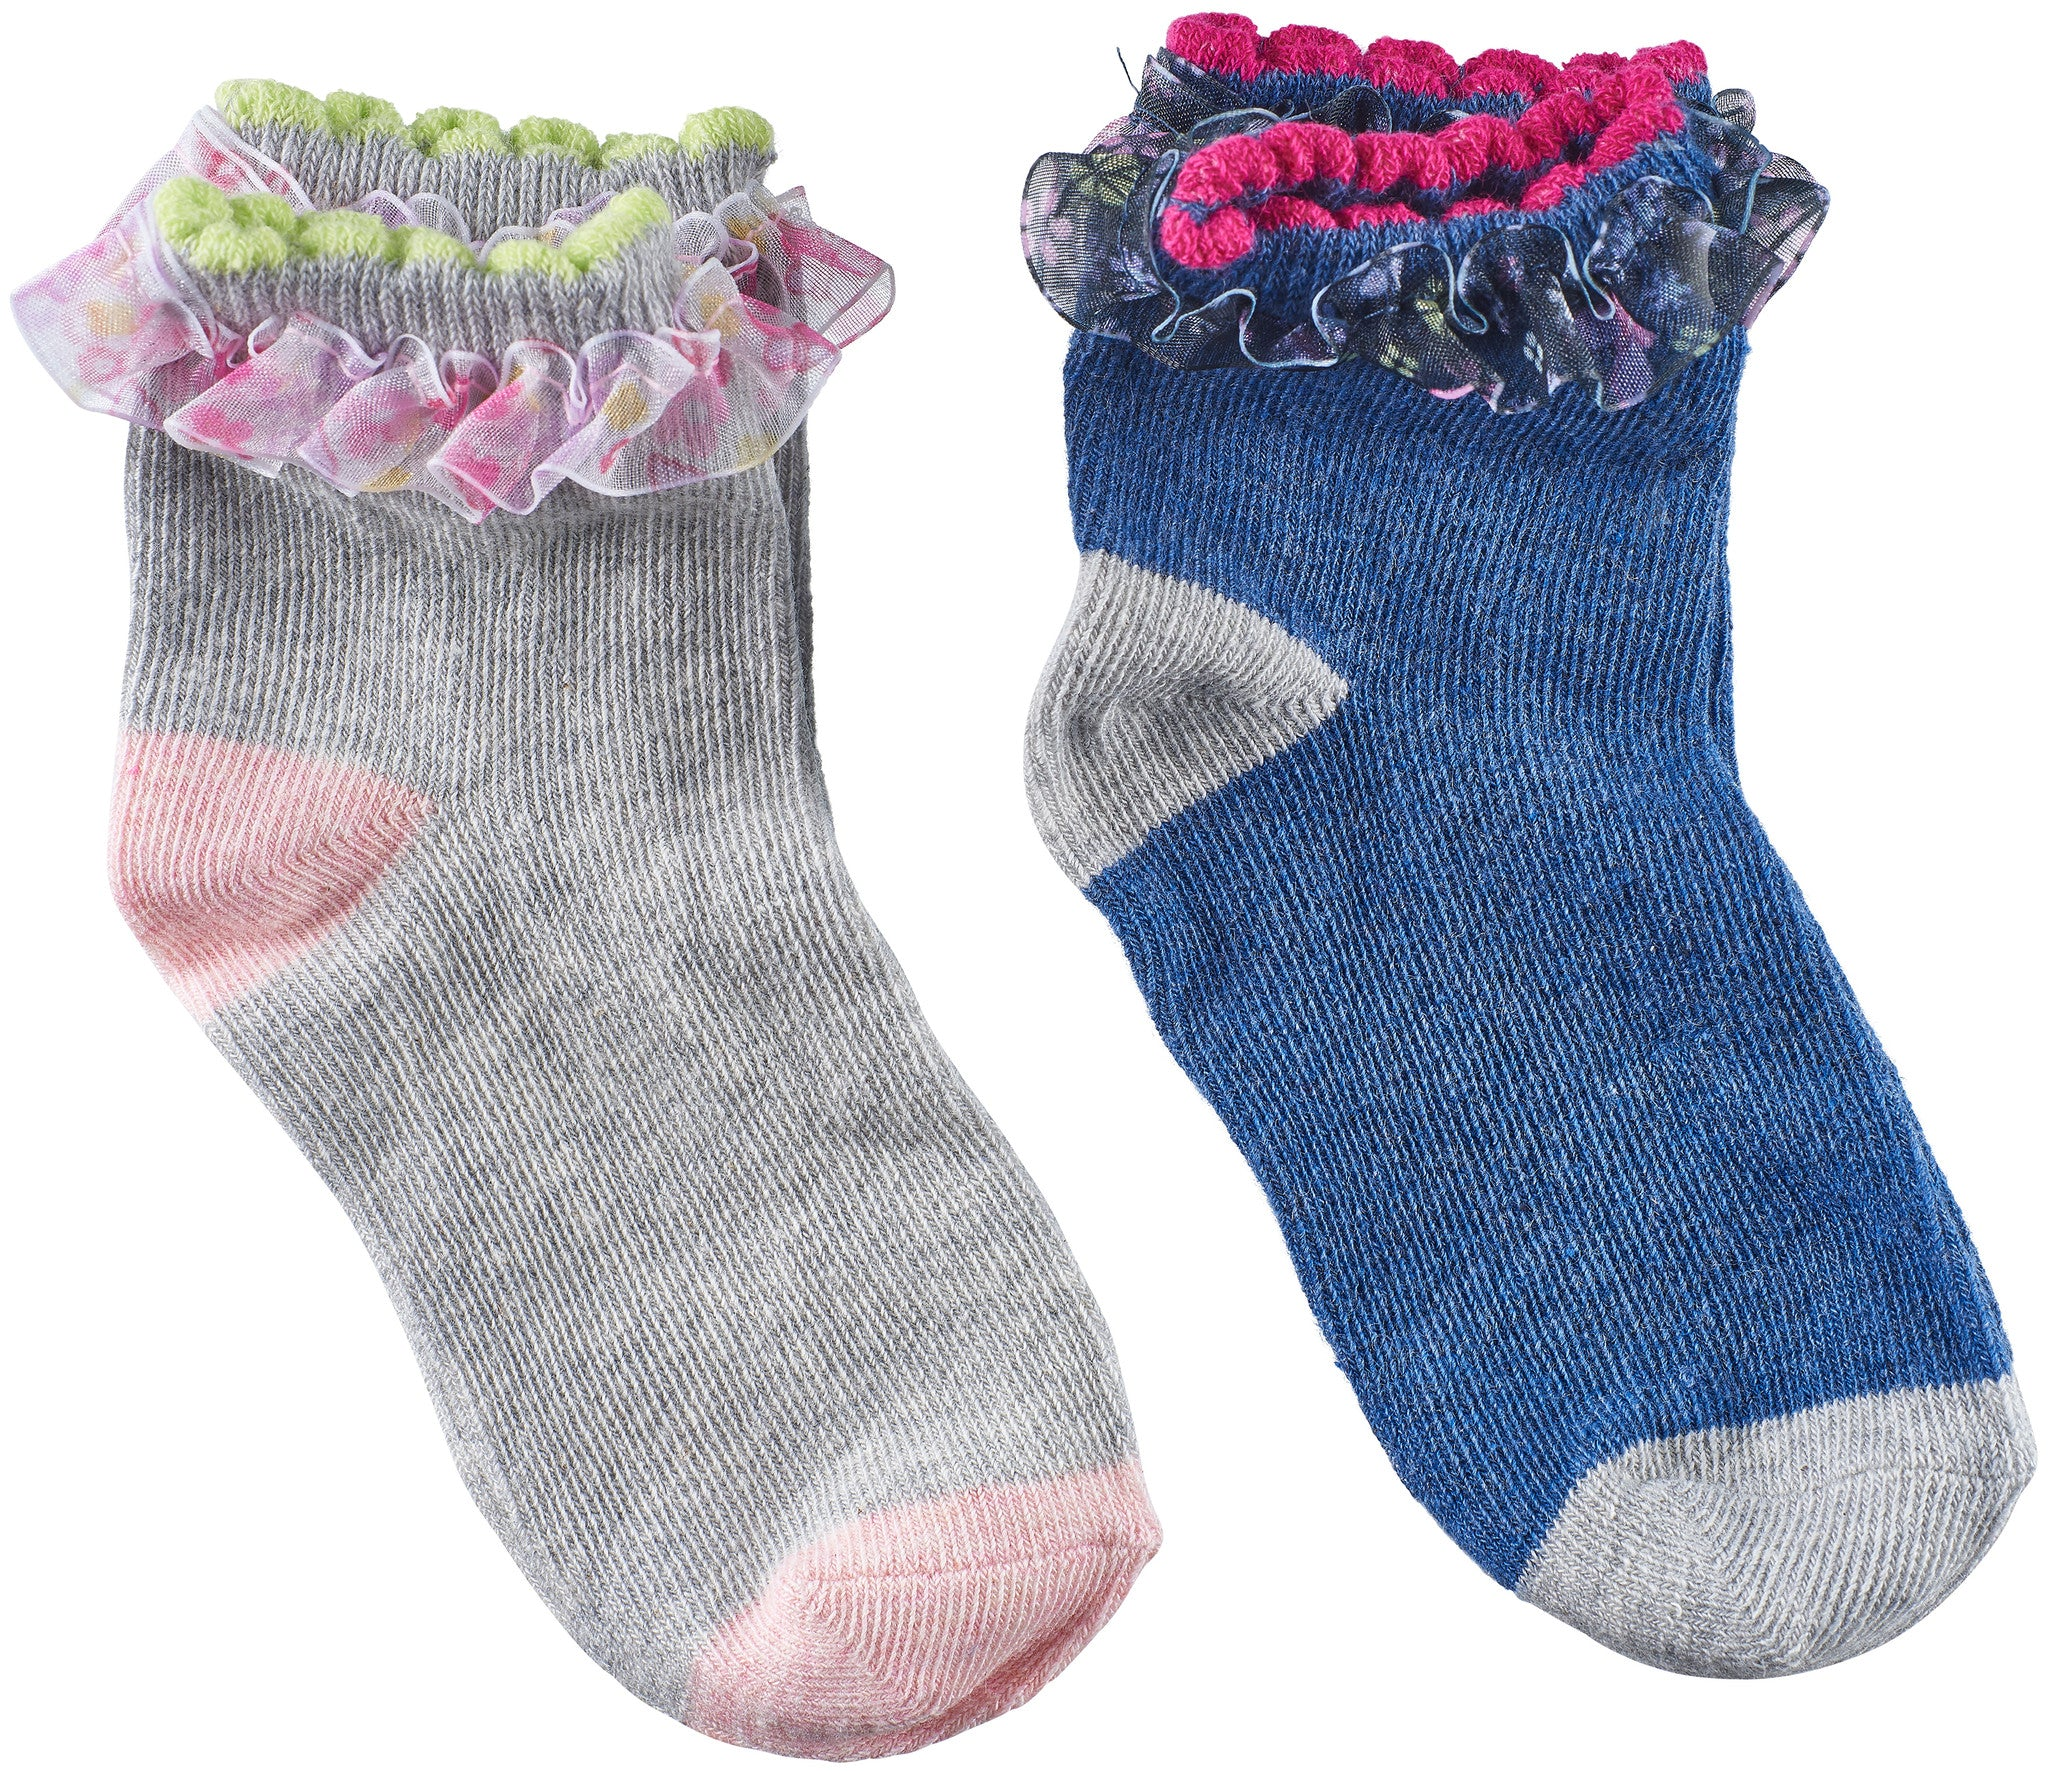 Toddler Girls Sheer Floral Trim Socks (Pack of 2)